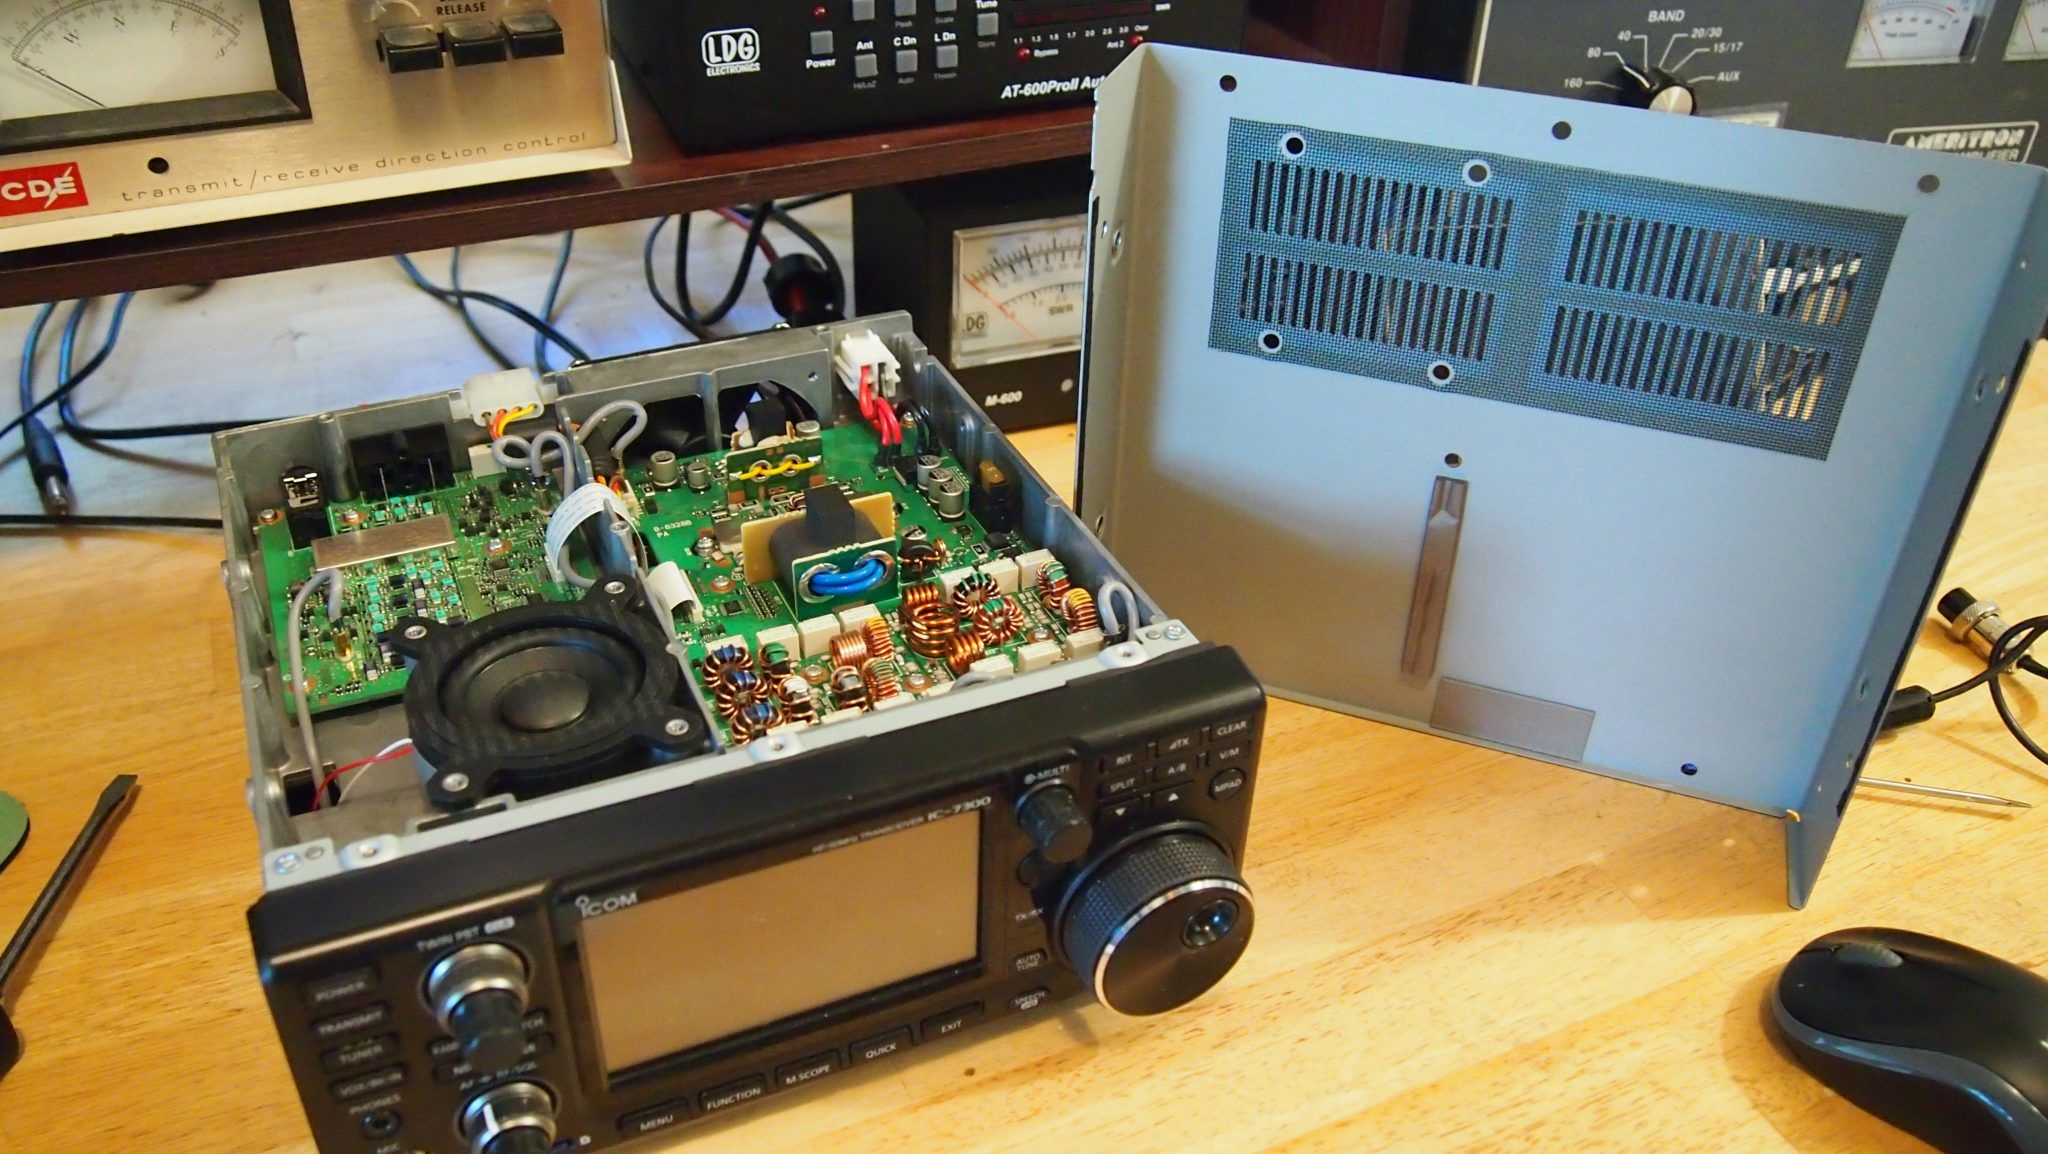 Inrad RX7300 Modification On Icom 7300 Keeping External